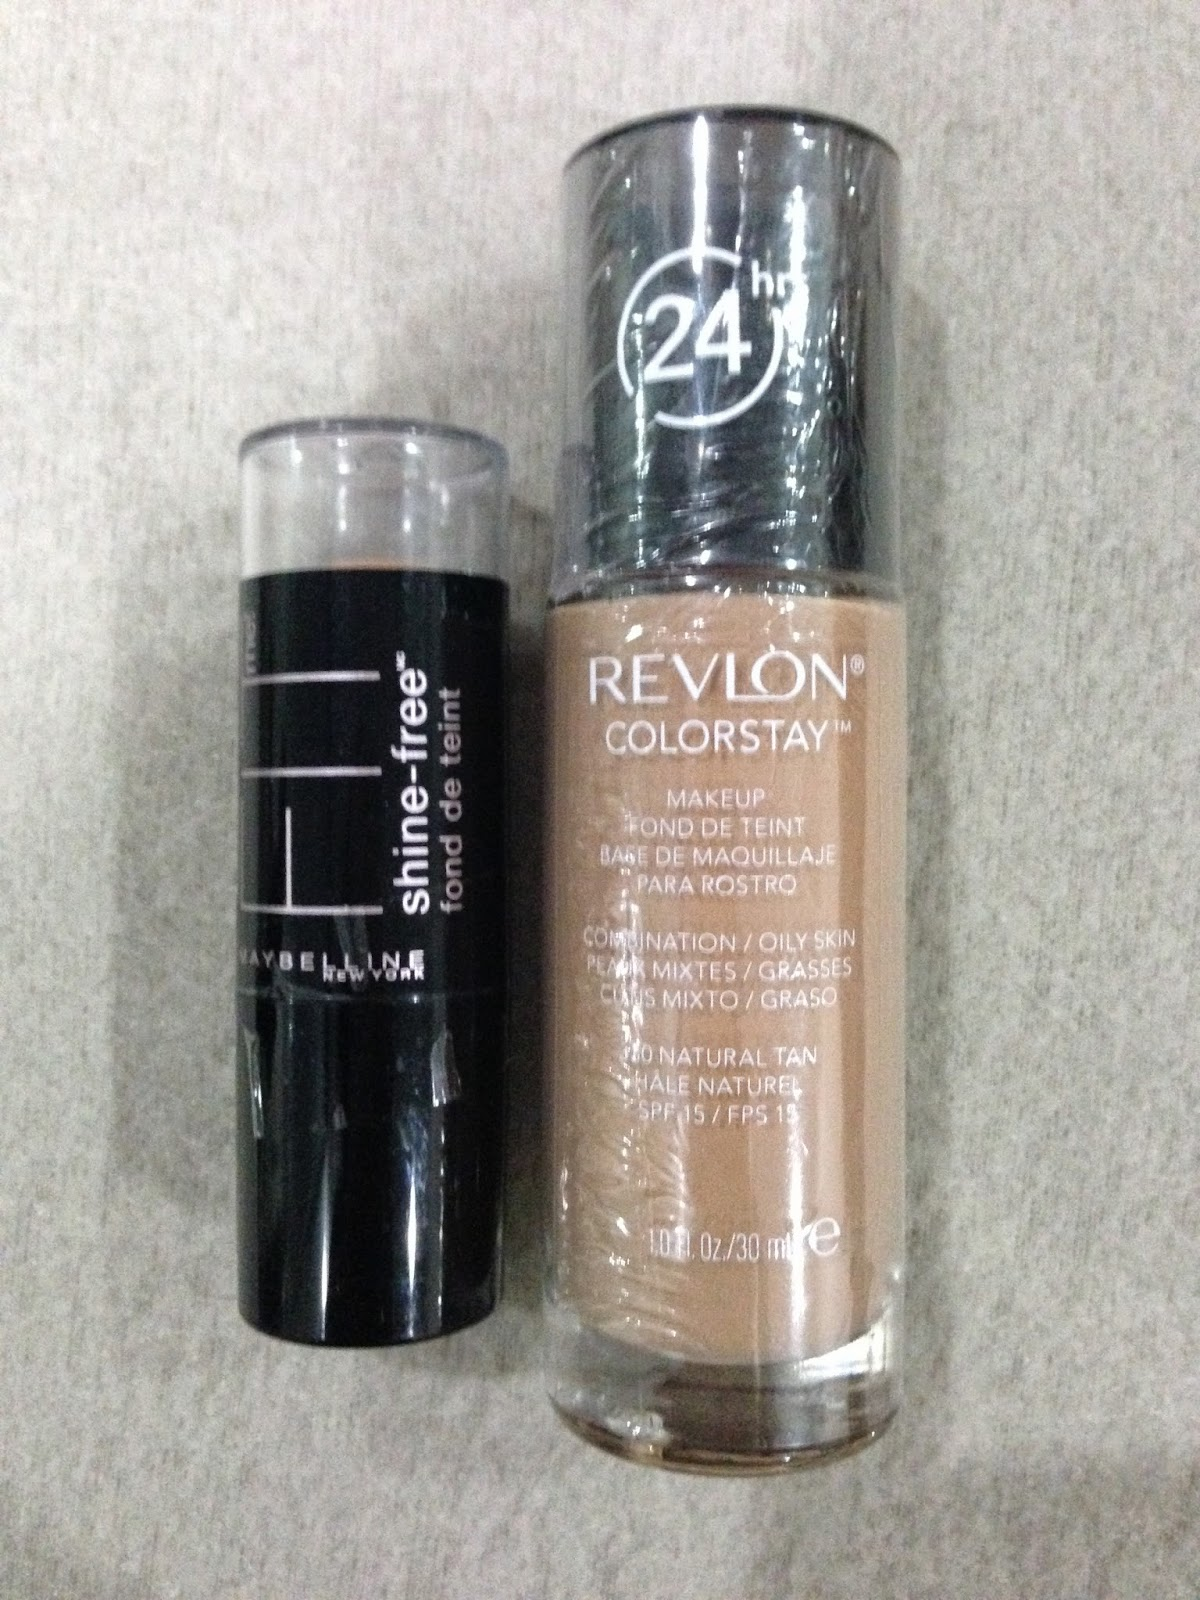 Revlon Colorstay Foundation for Combination/Oily Skin in shade 330 Natural Tan and the Maybelline Fit Me Foundation Stick in shade 240 Golden Beige.